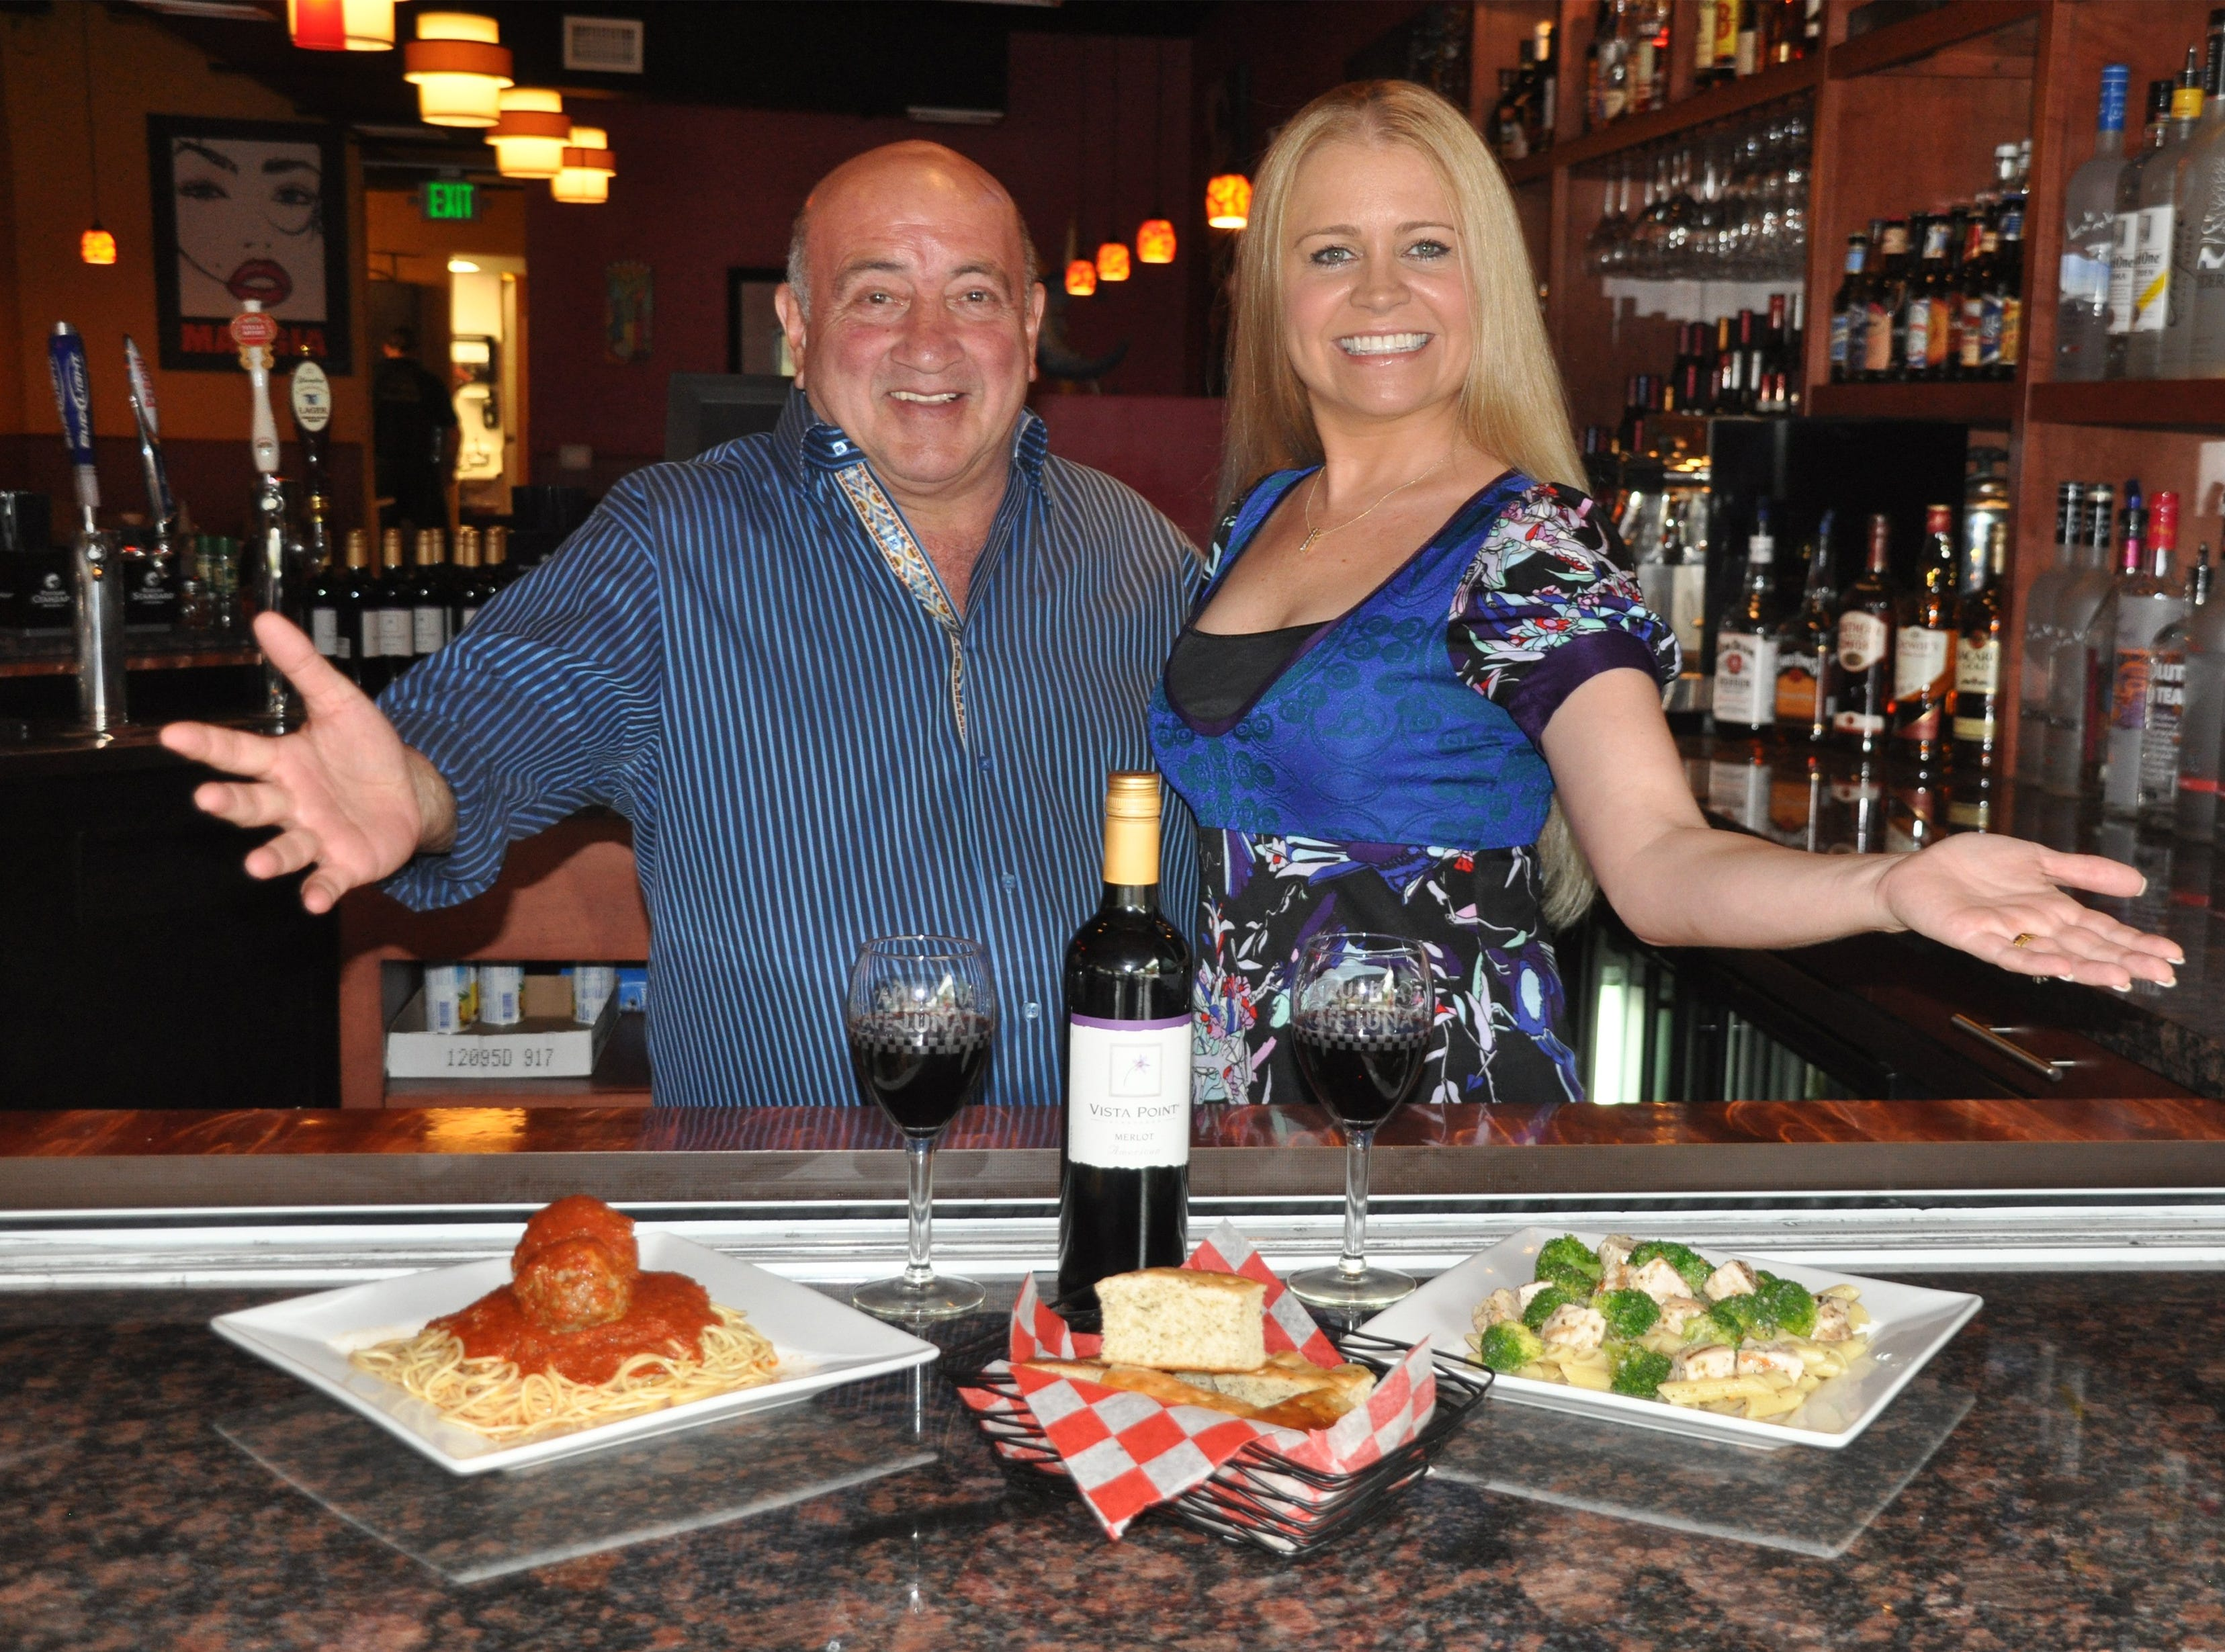 Co-owners Ed Barsamian and Shannon Radosti, shown in 2012, plan to open their new Cafe Luna in the former space of Bill's Steak & Seafood in Lakewood Plaza on U.S. 41 East in East Naples.